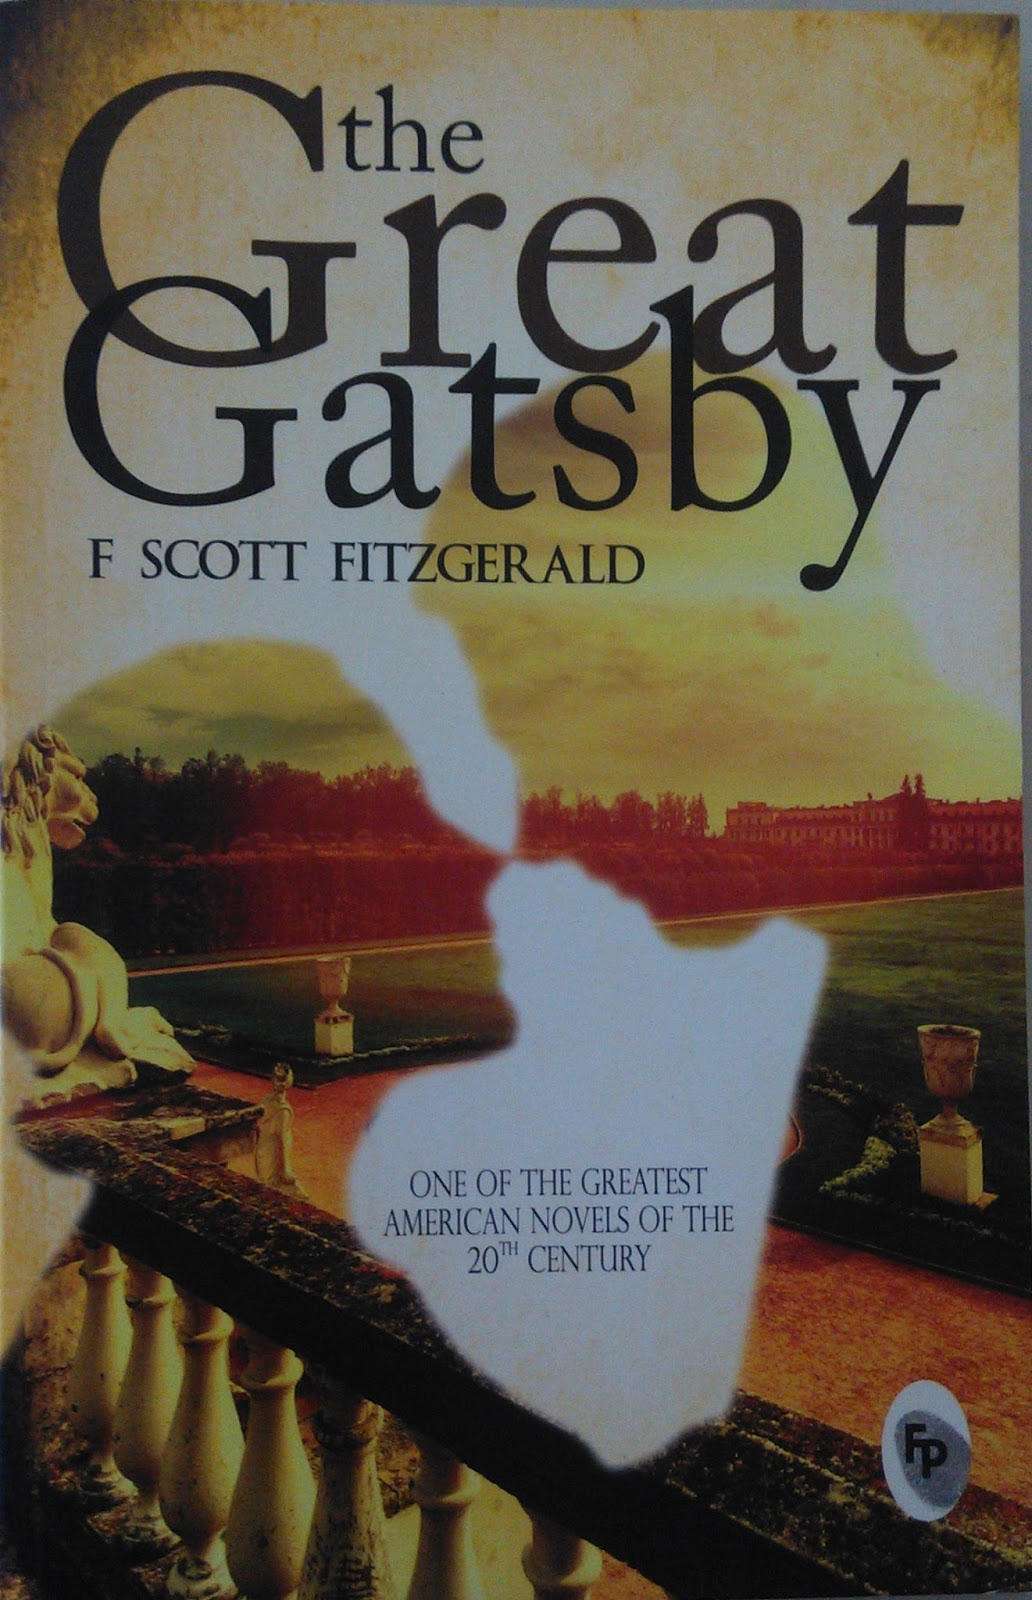 francis scott fitzgerald essay Francis scott key fitzgerald was born september 24, 1896, in st paul minnesota, to edward and mary mcquillan fitzgerald fitzgerald's mother was descended from irish immigrants who had come to the united states during the years of famine in ireland.